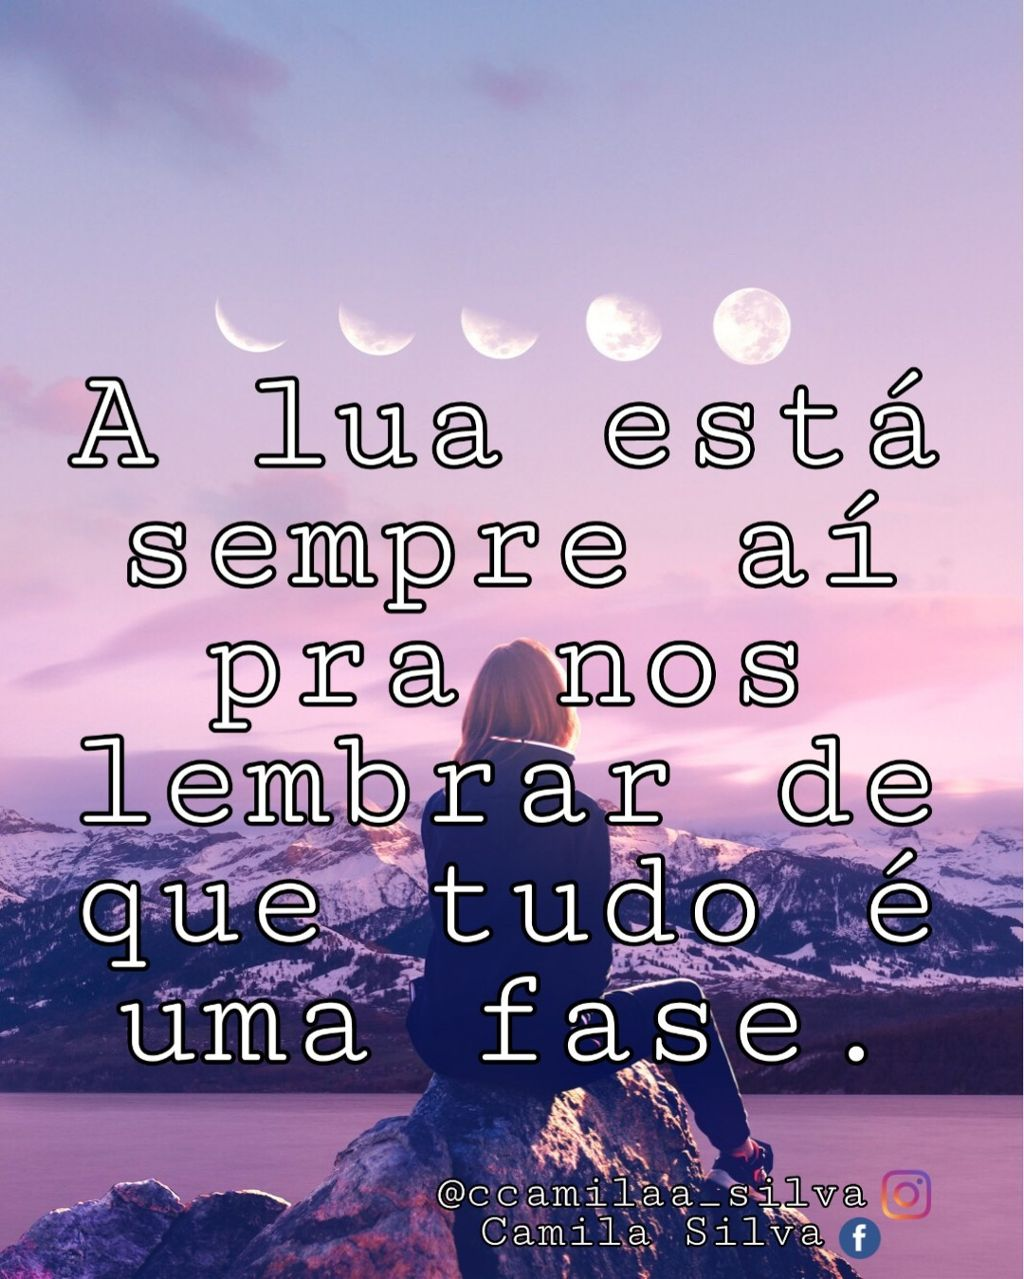 #fases 🌒🌓🌔🌕🌖🌗🌘🌙